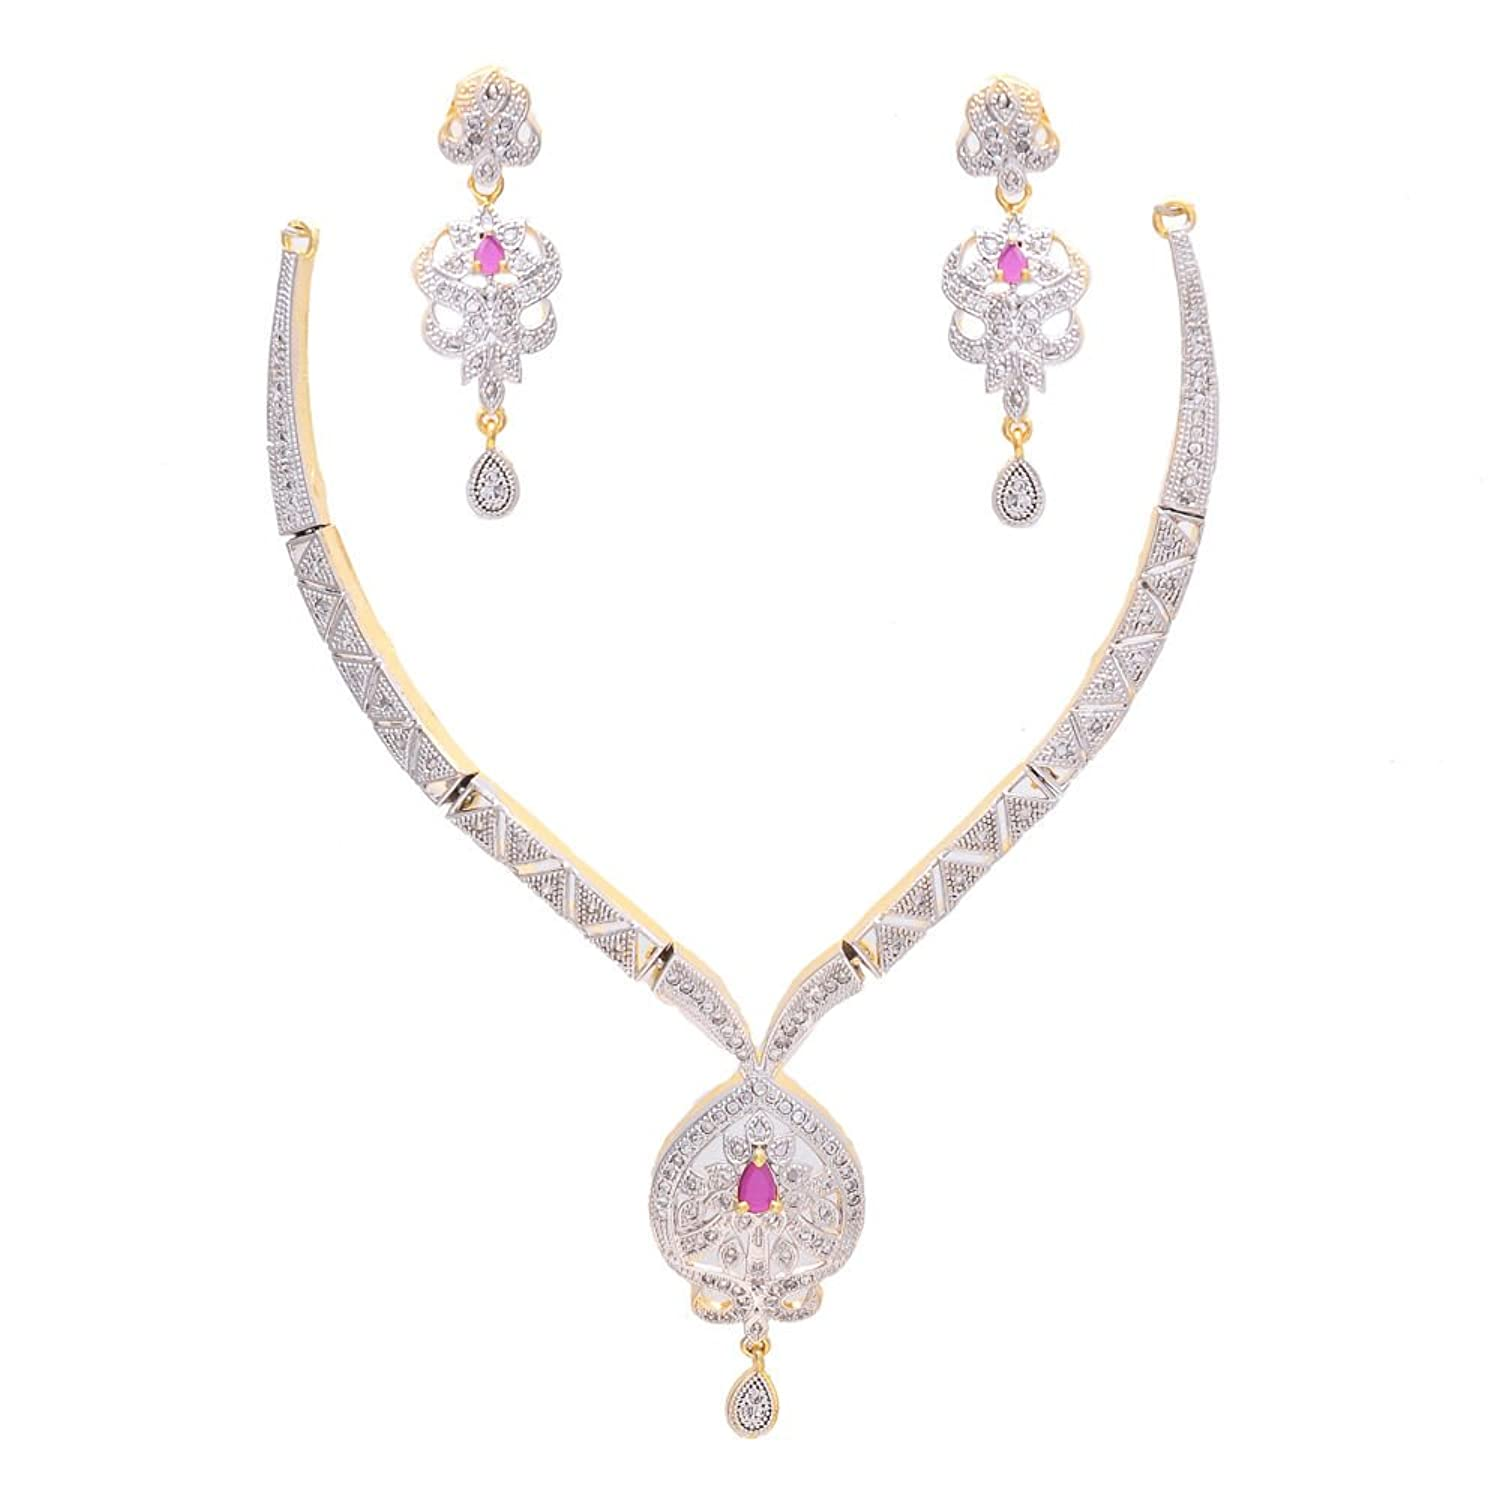 Geode Delight American Diamond CZ Vintage Style Necklace Earrings Set for Women